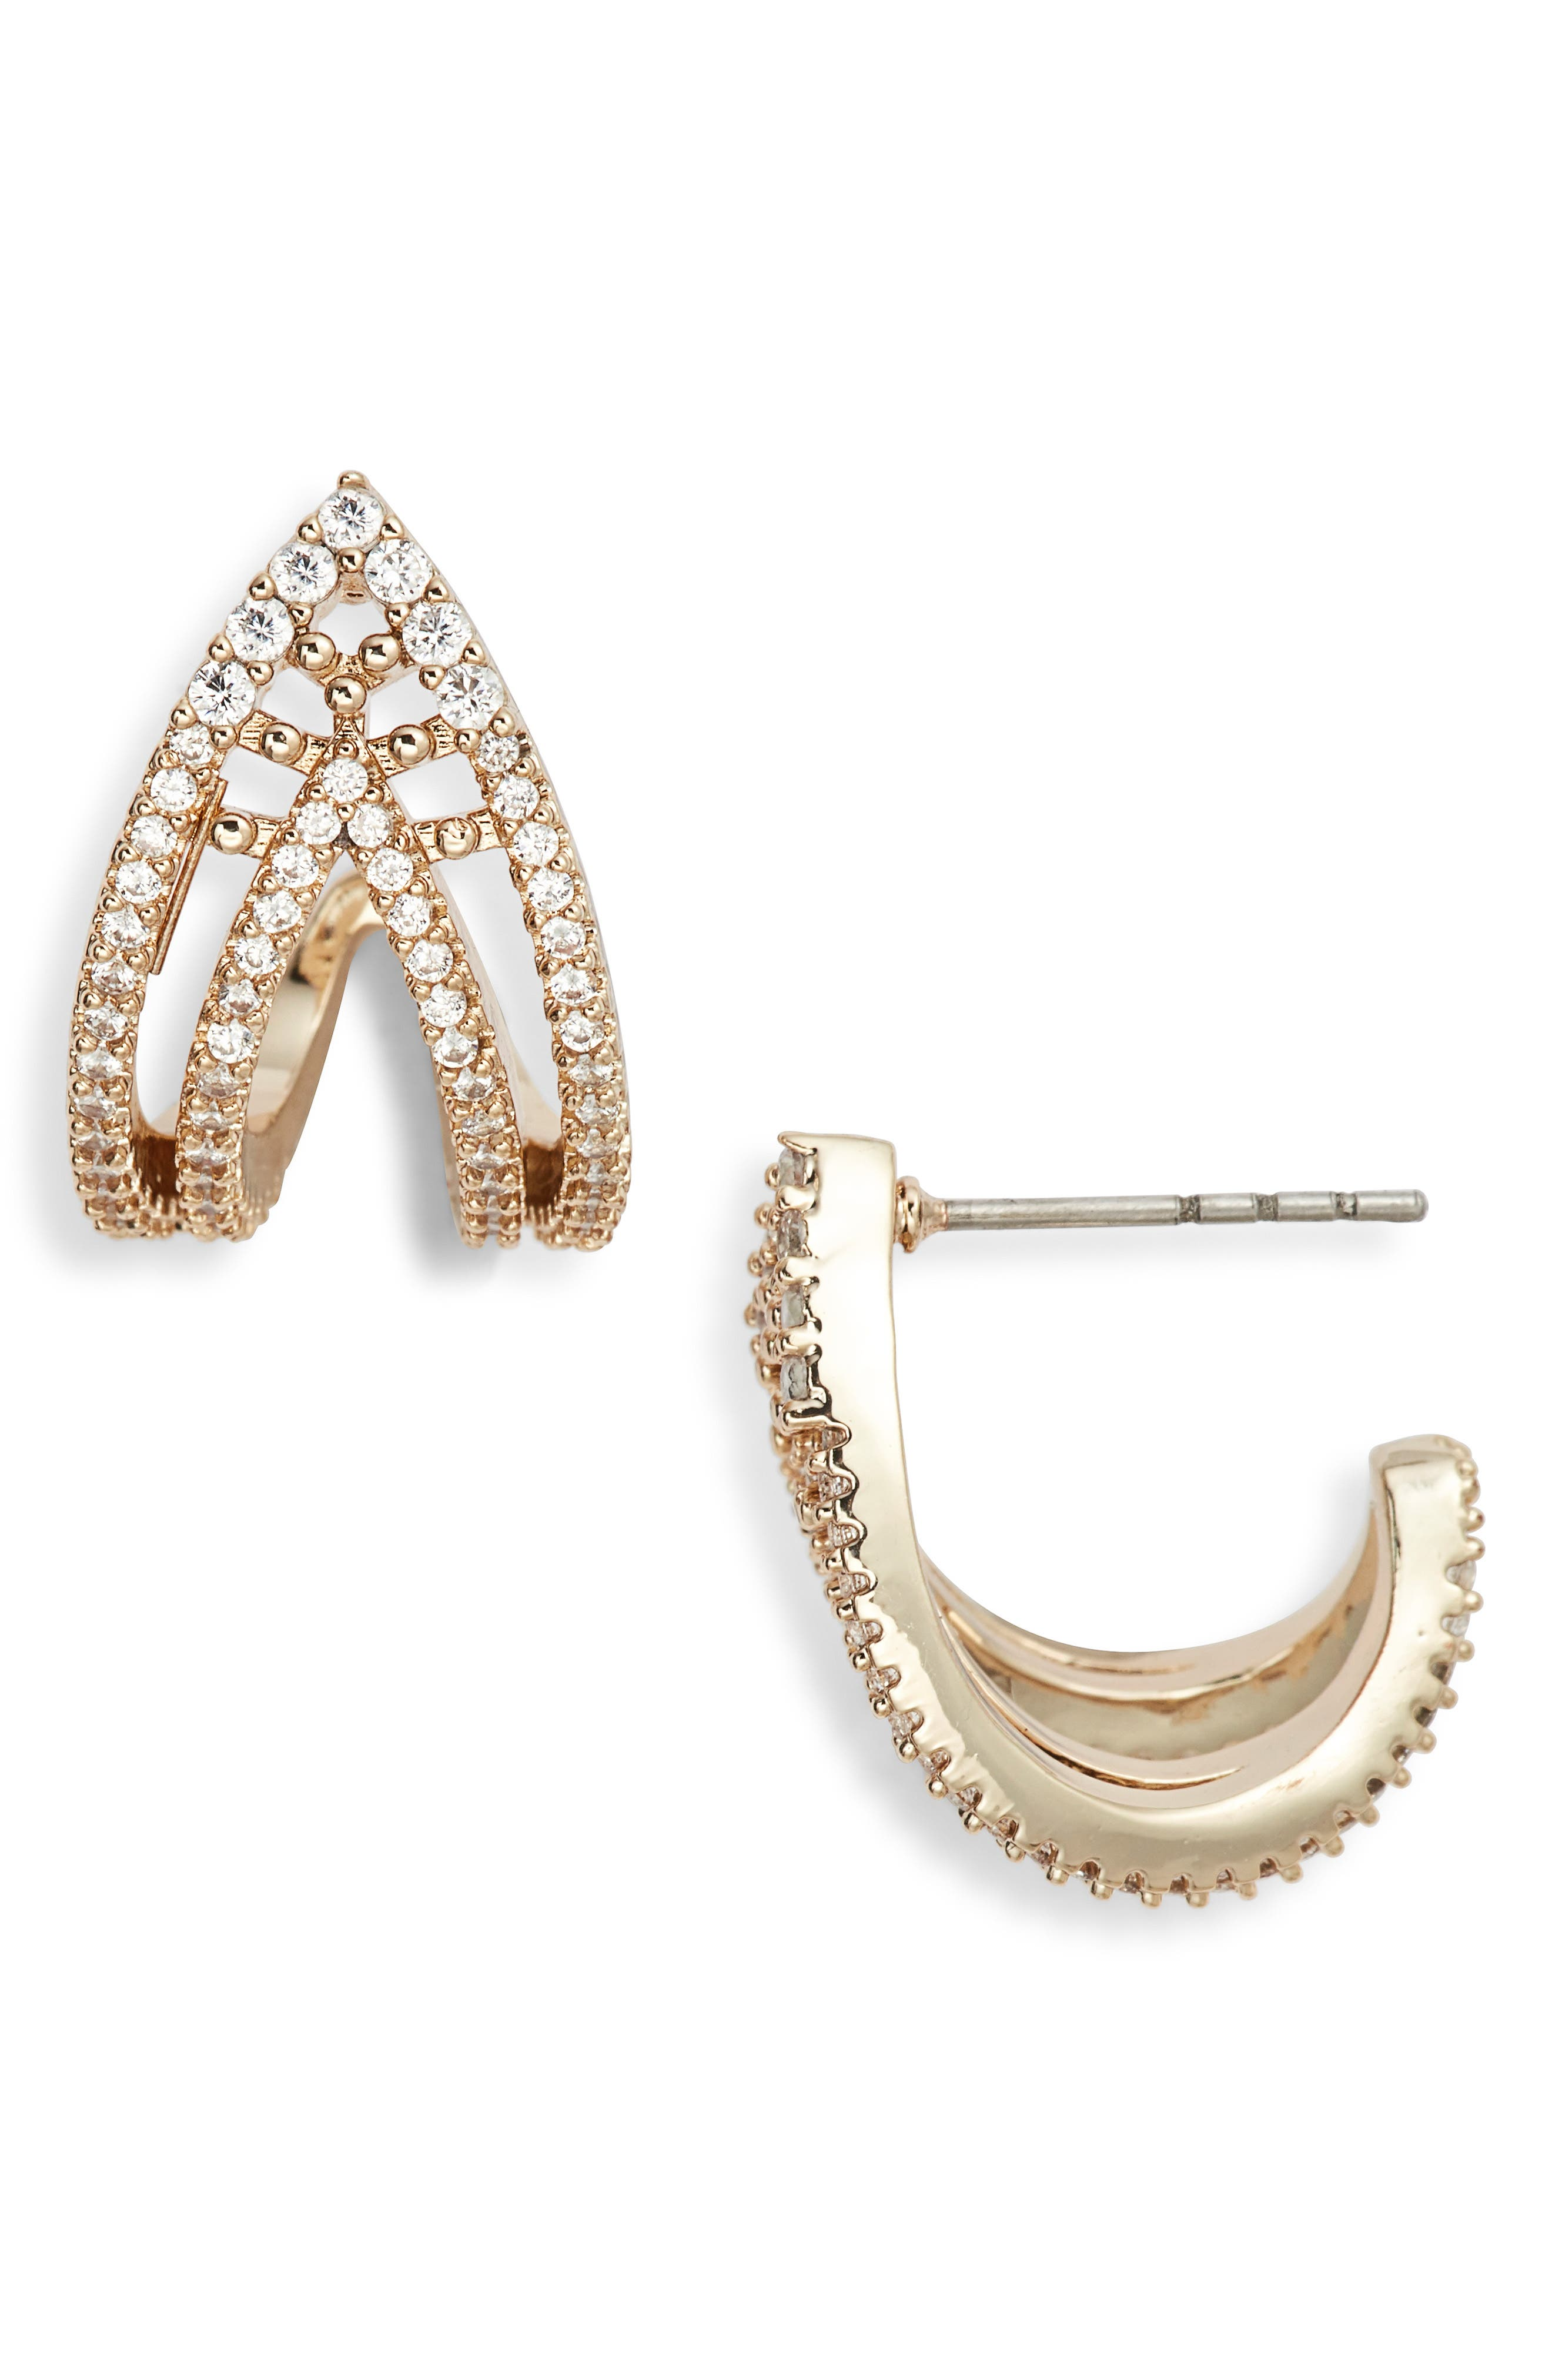 JENNY PACKHAM Pave Curved Open Stud Earrings in Gold